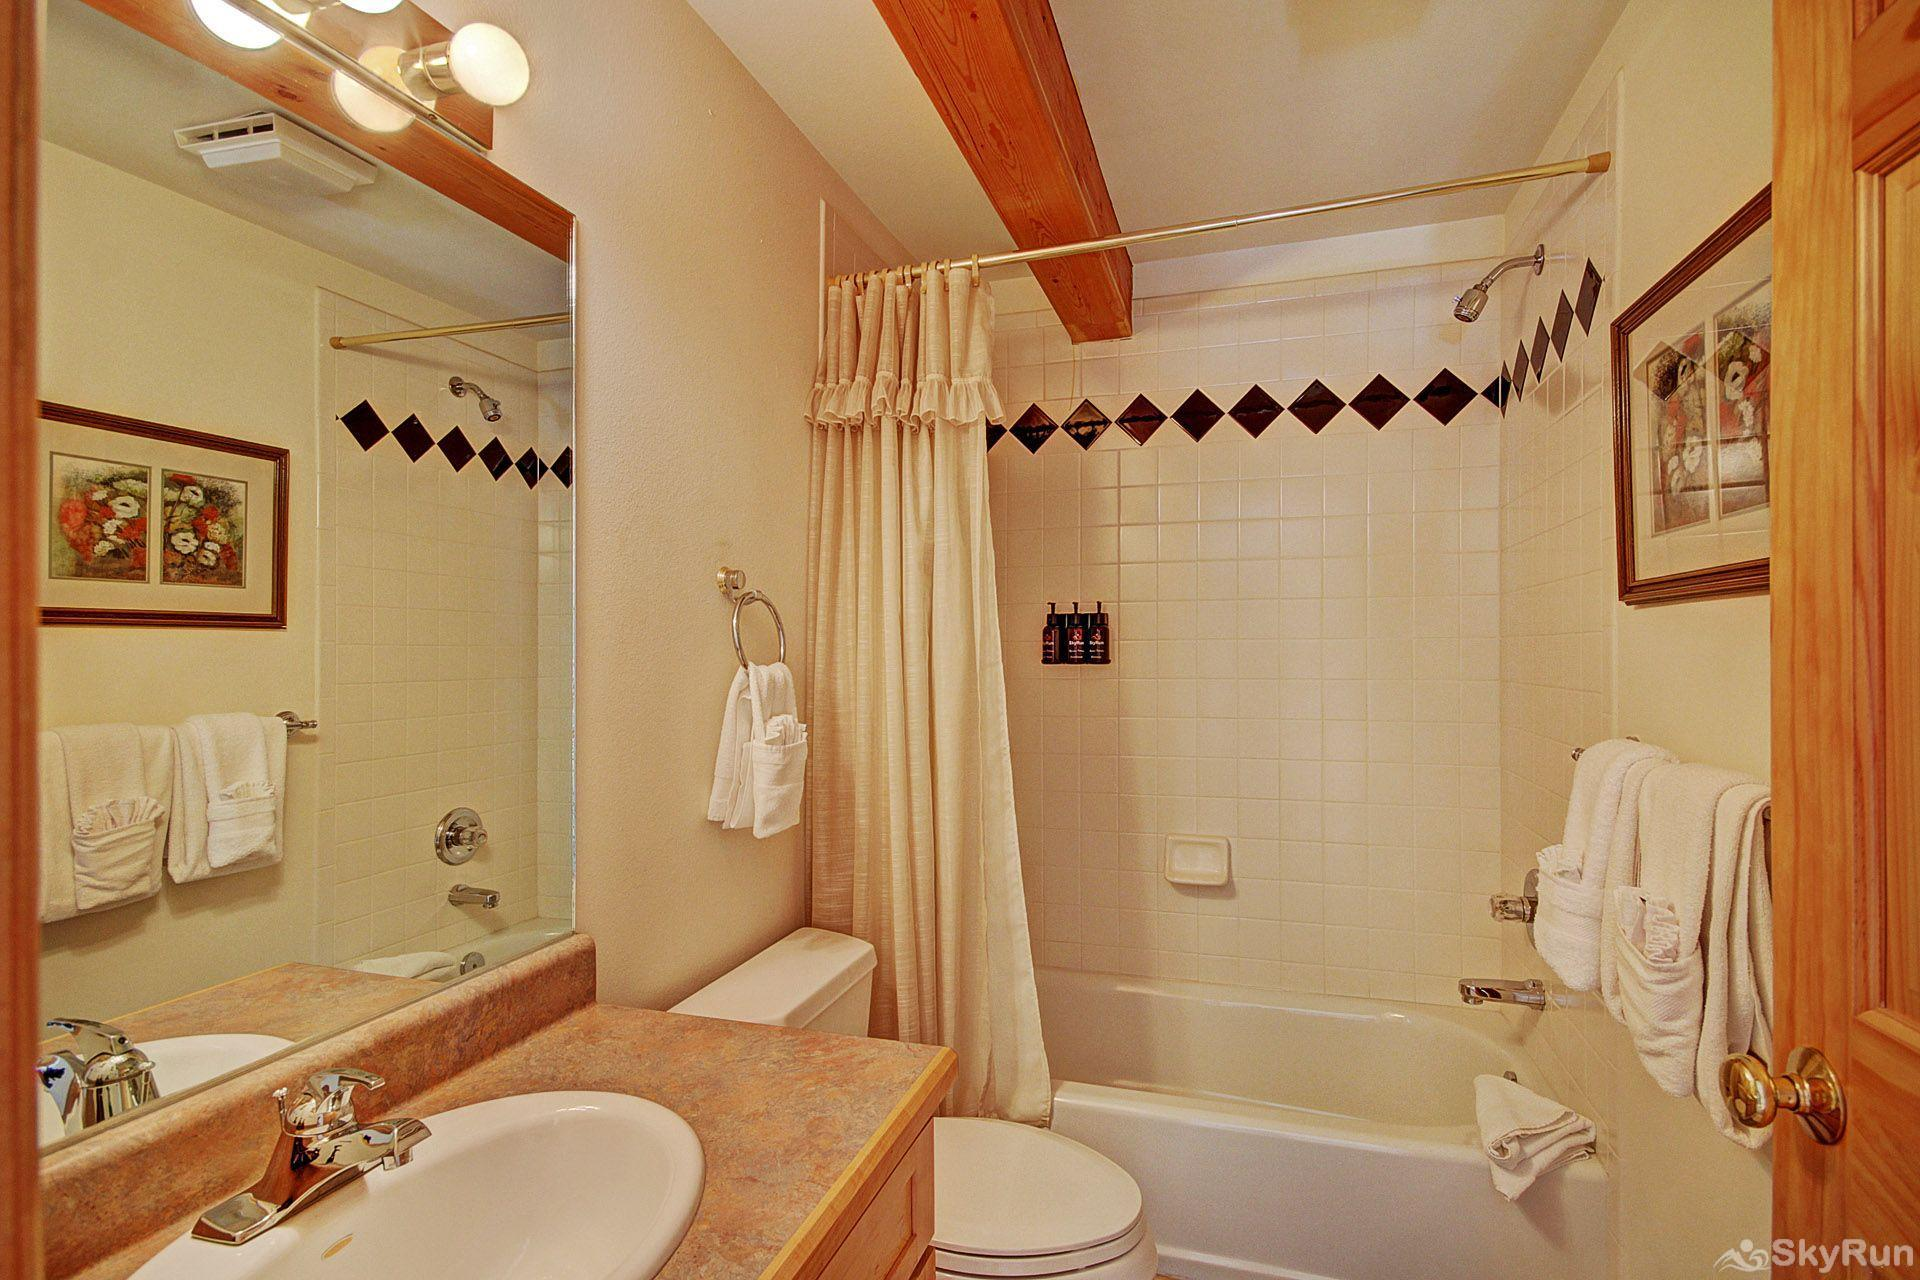 Sauterne Sanctuary 3BR 3BA Full Guest Bathroom on main level